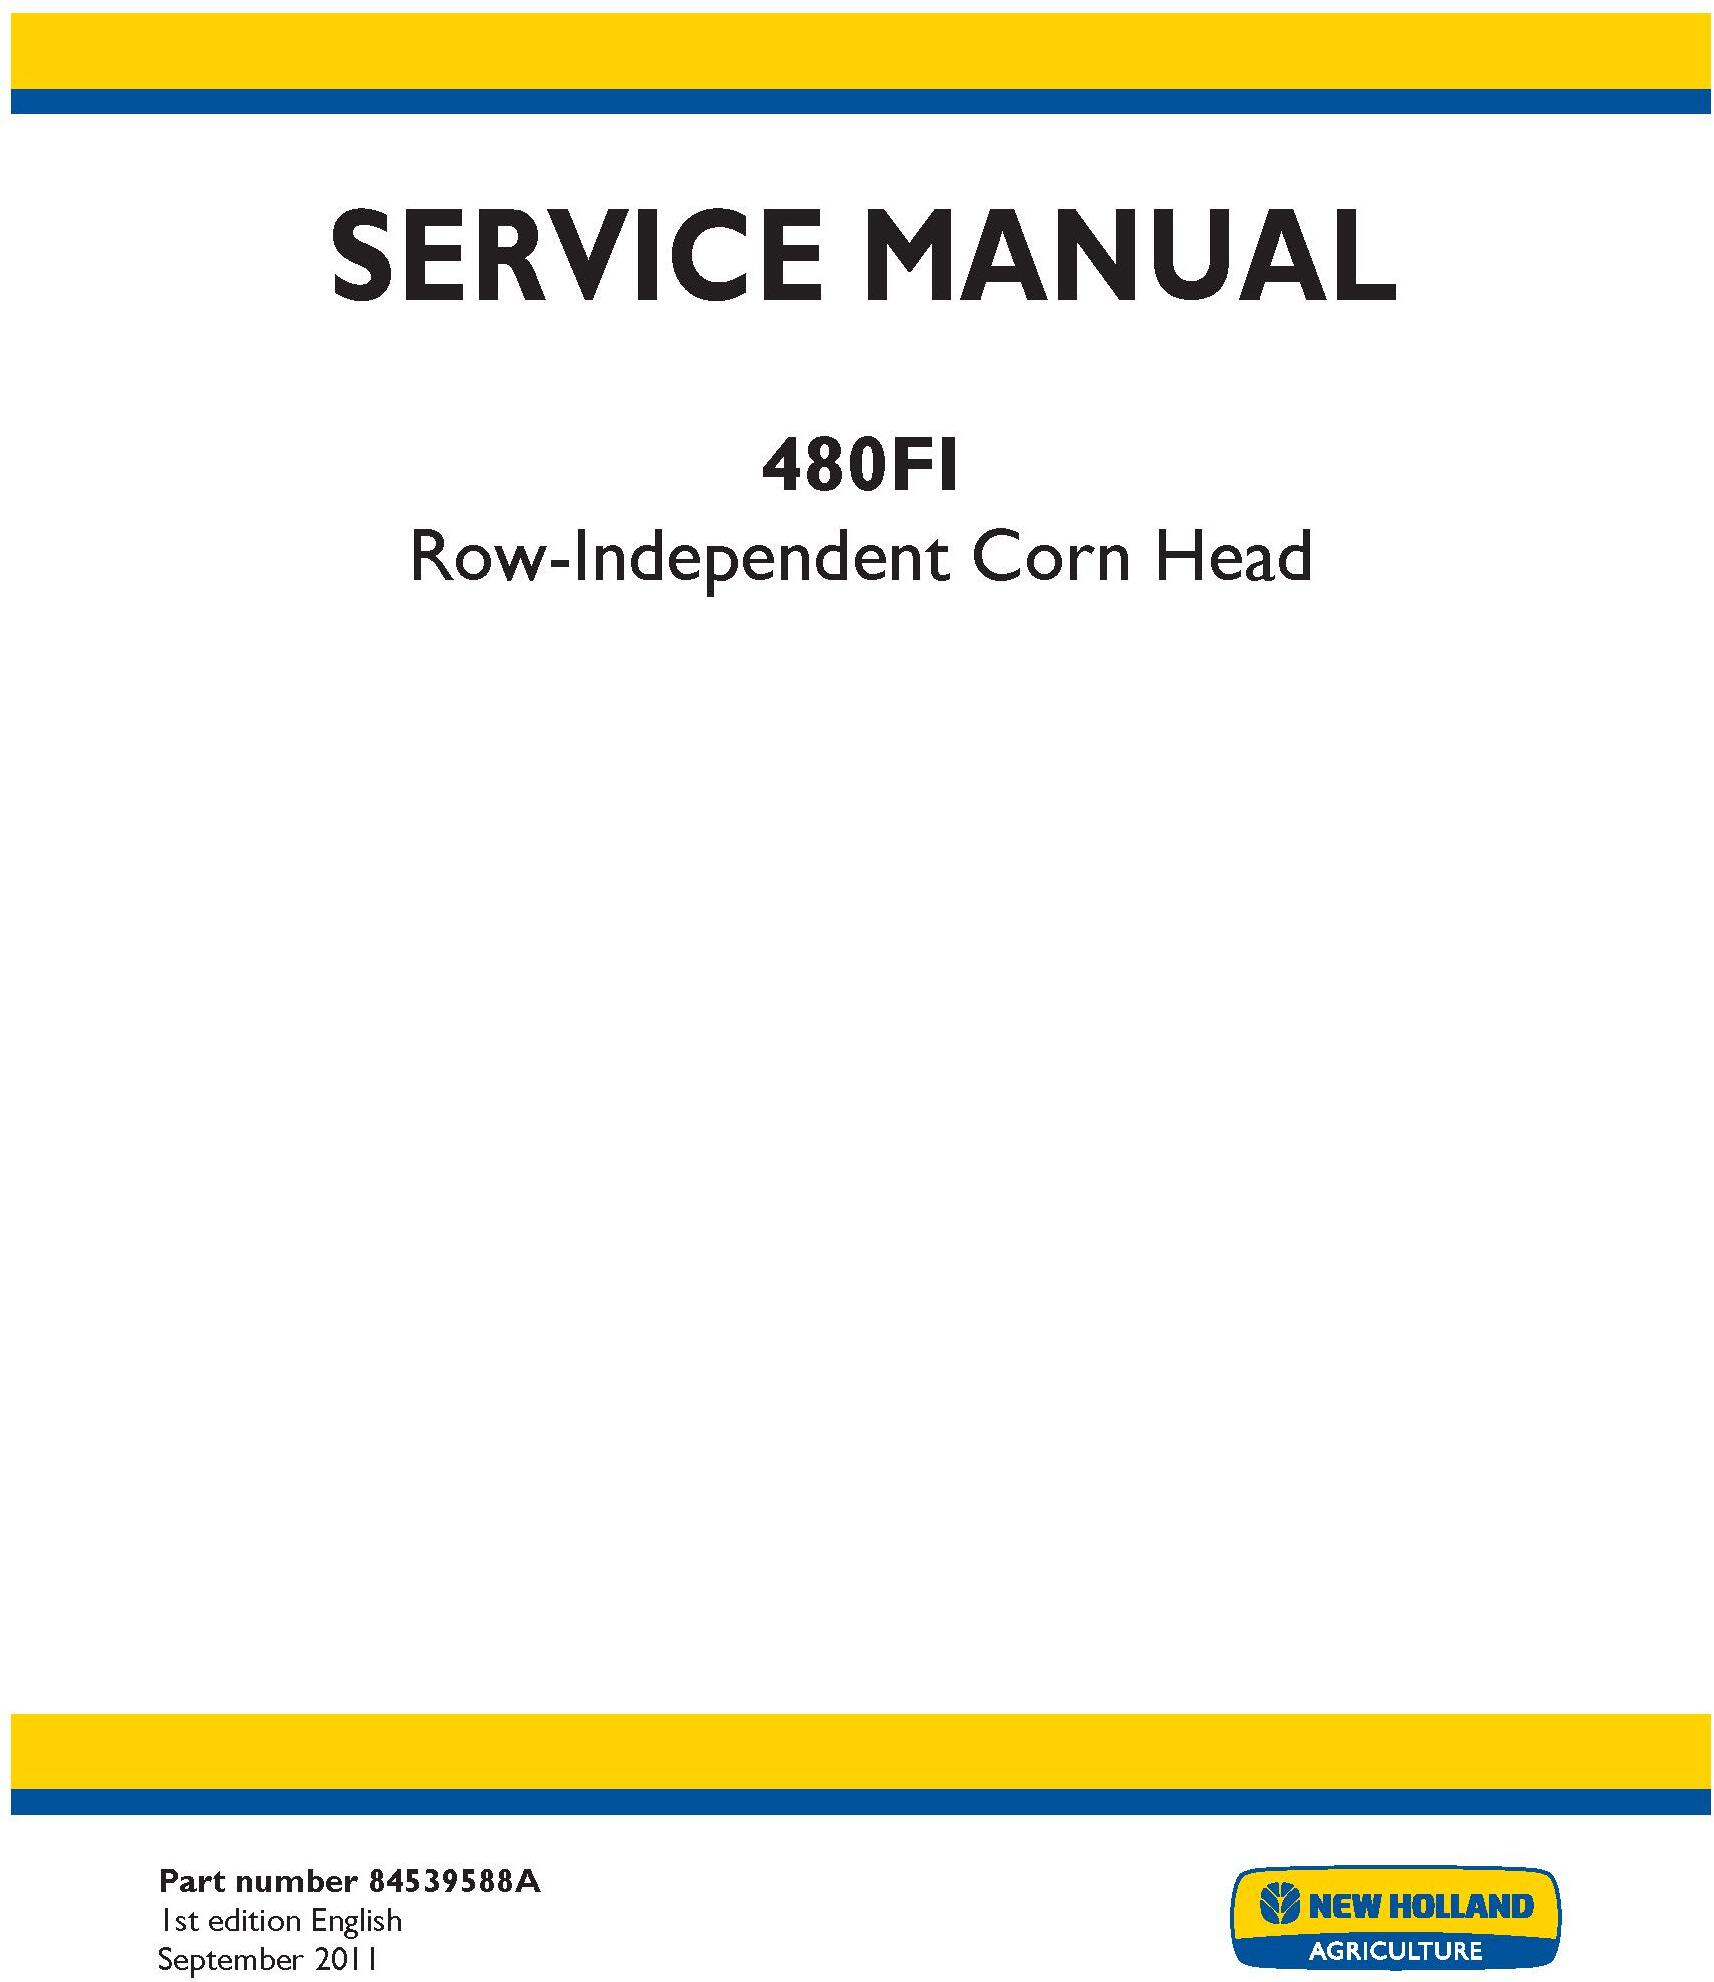 New Holland 480FI Row Independent Corn Head Service Manual - 20059